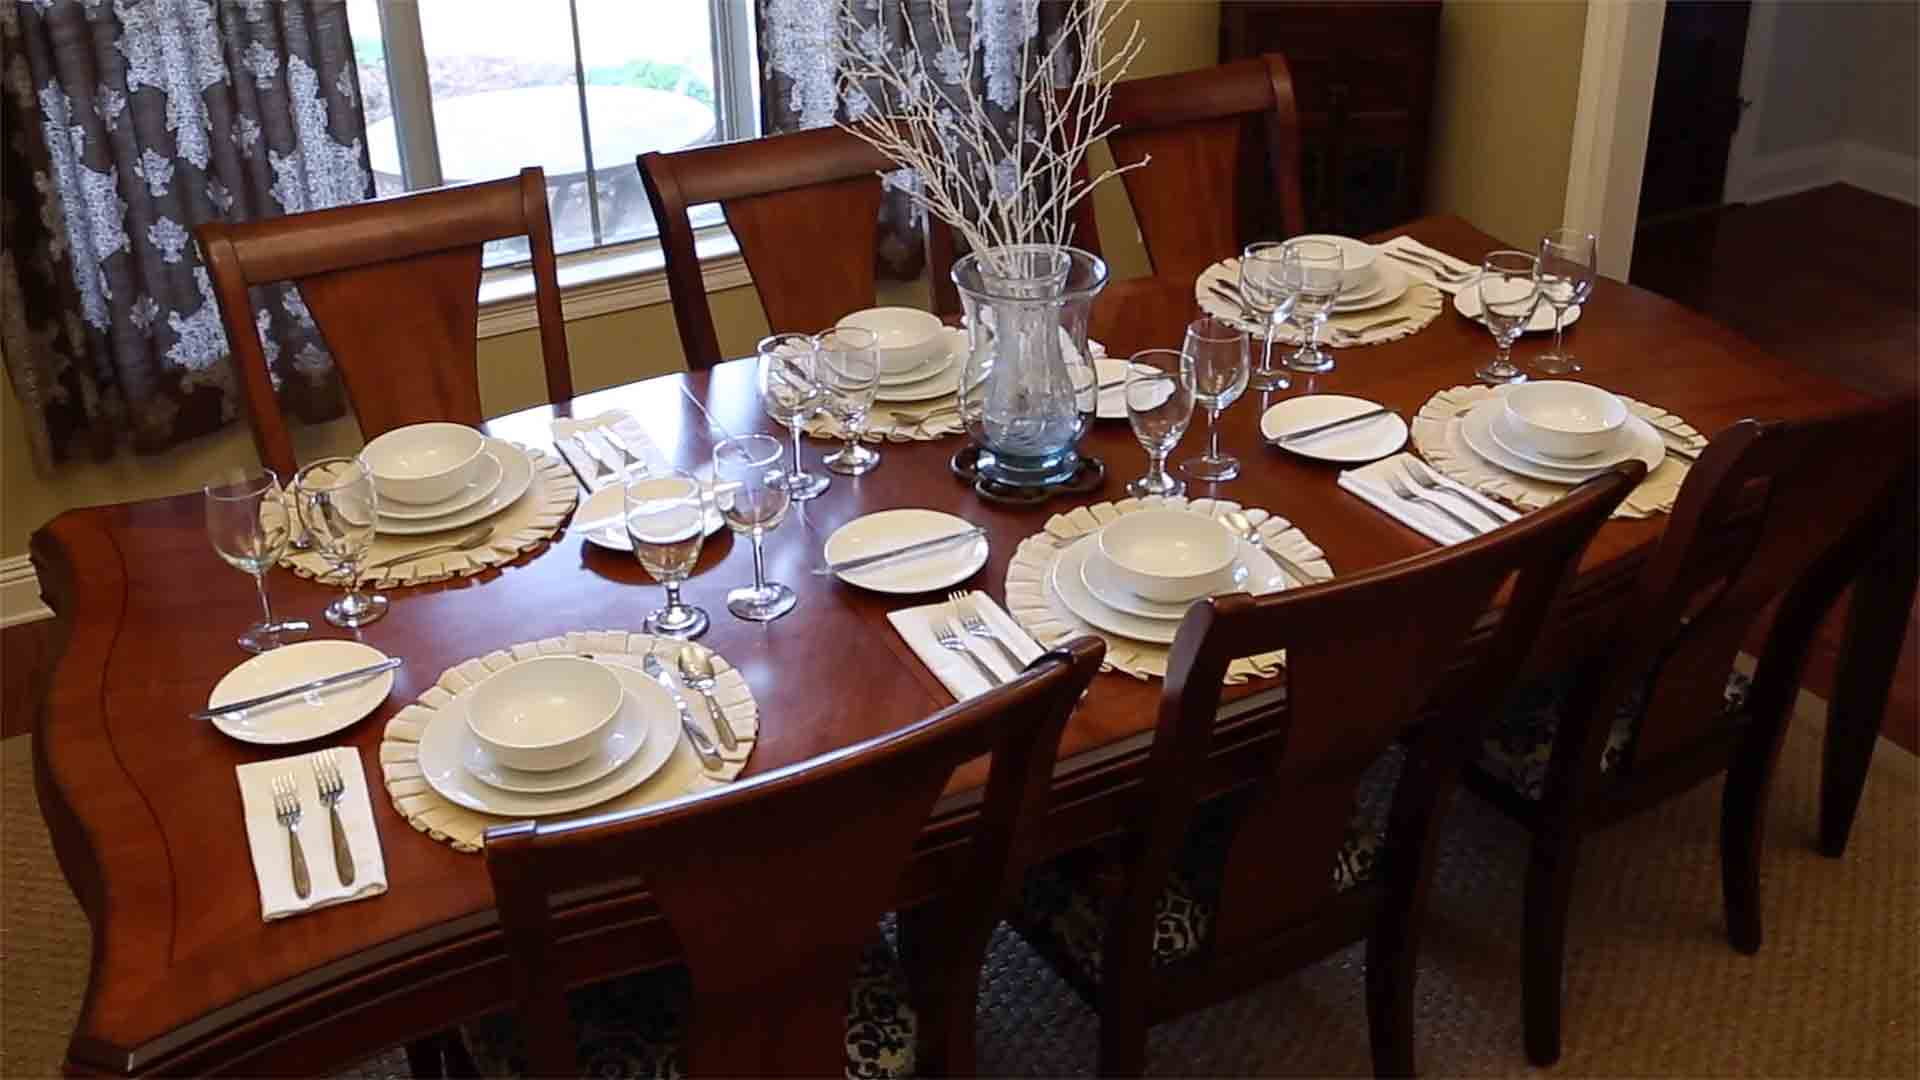 Dinner table with place settings, ready for Thanksgiving